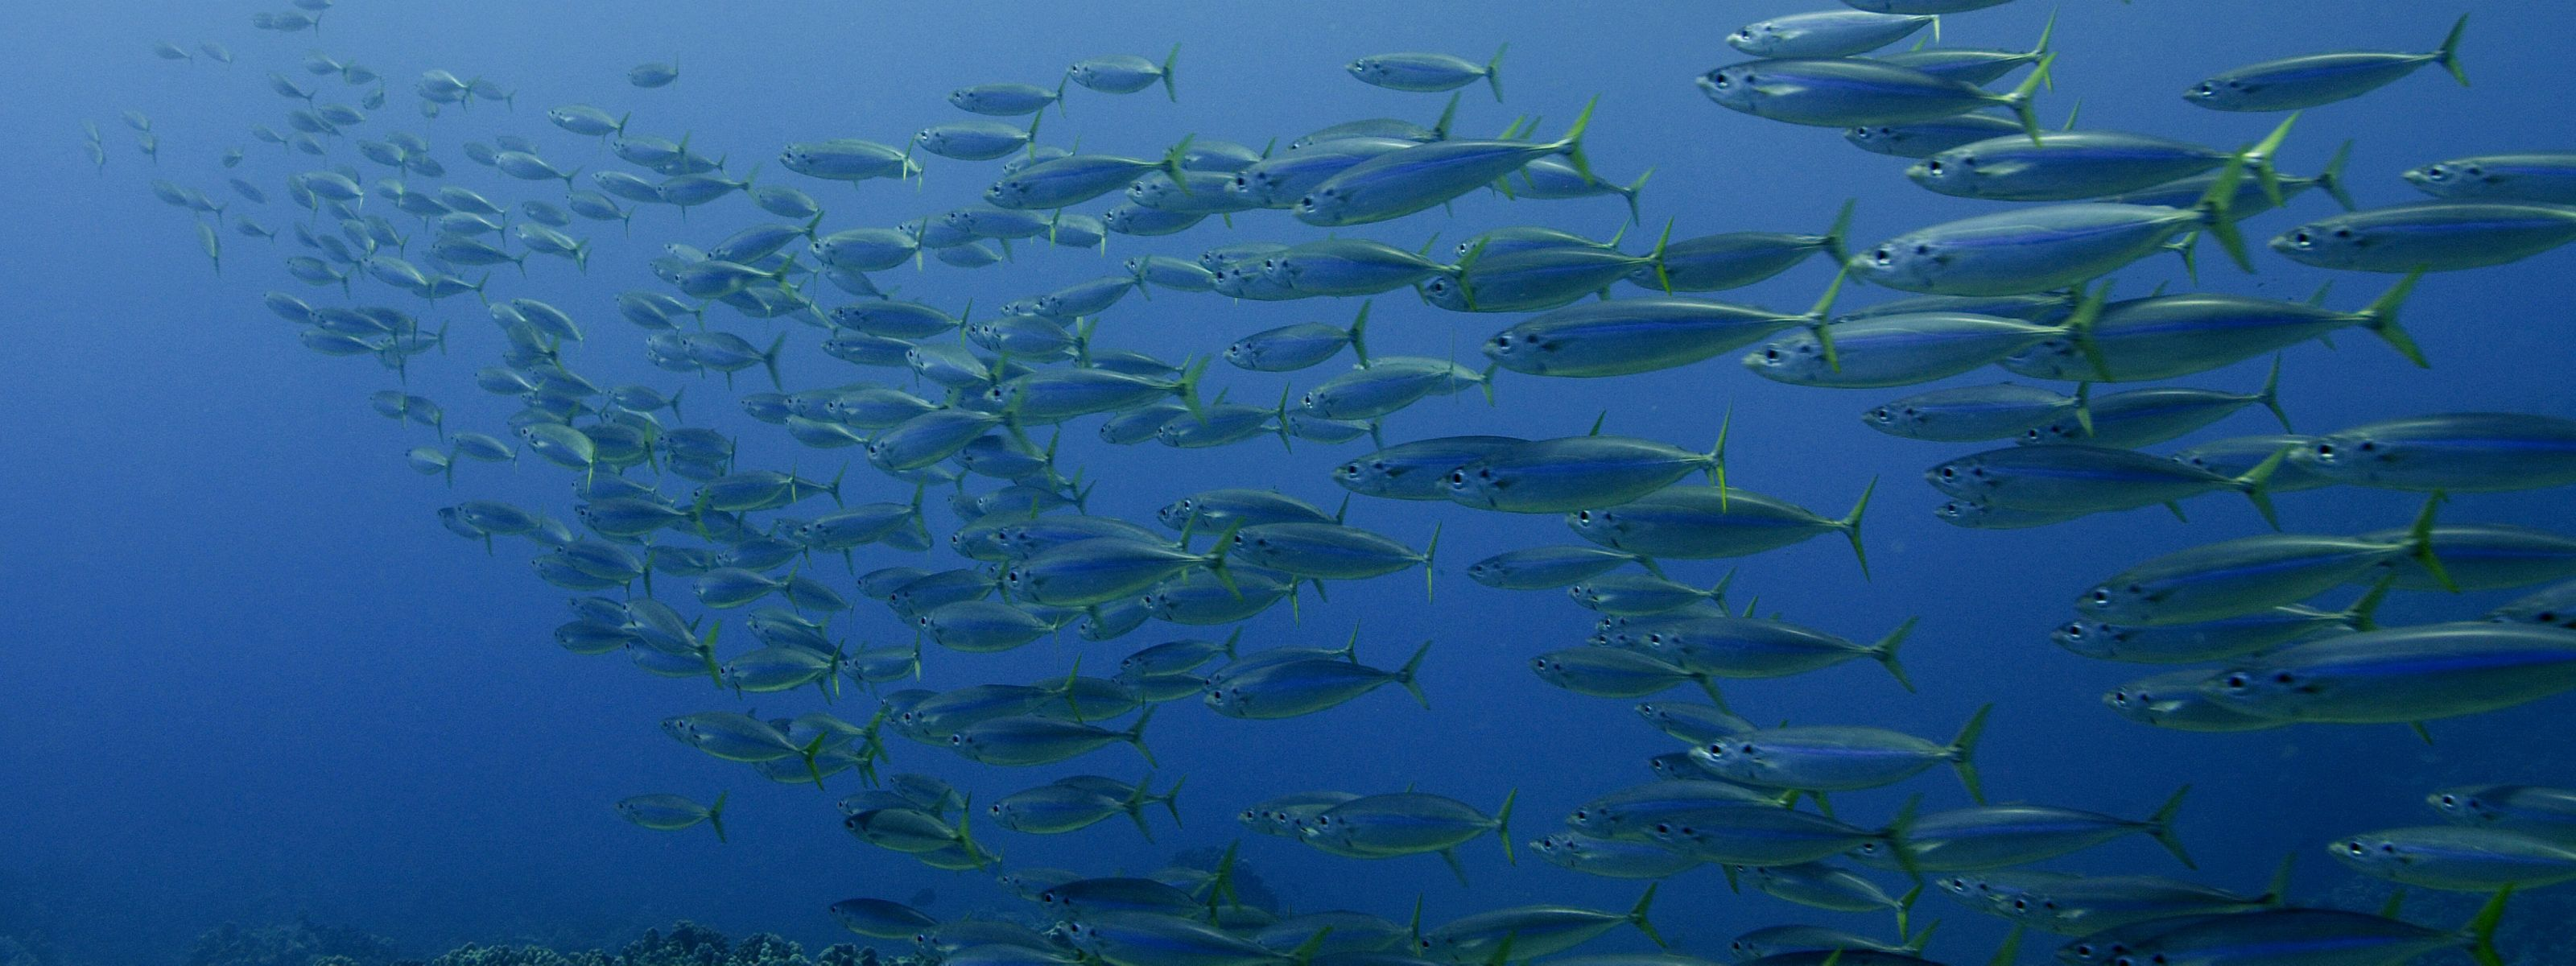 A school of opelu fish swimming in the waters of Hawaii.